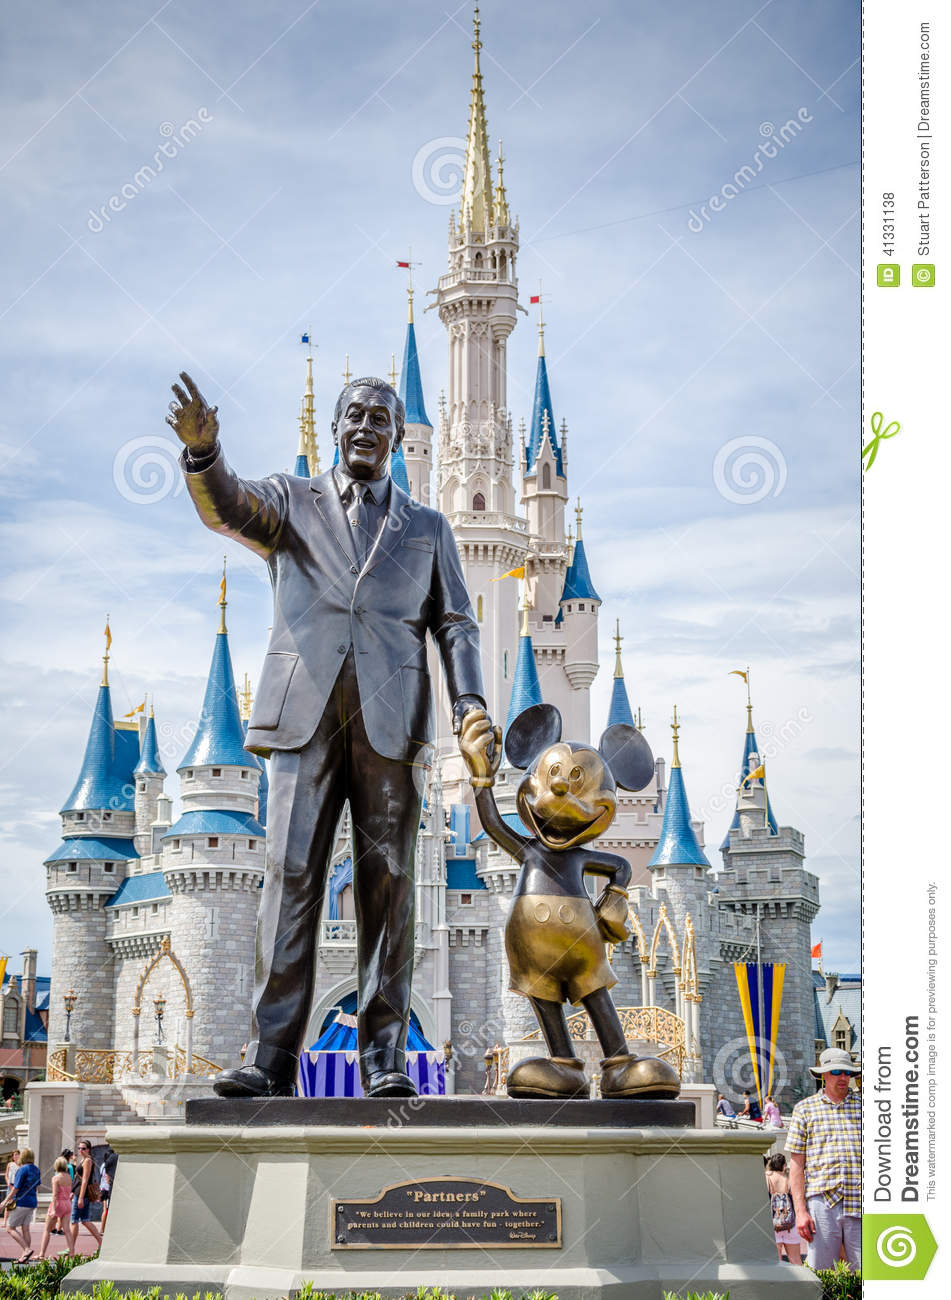 Editorial Stock Photo Walt Disney Mickey Mouse Statue Front Cinderella S Castle World Orlando Florida Image41331138 on disney cinderella castle floor plan